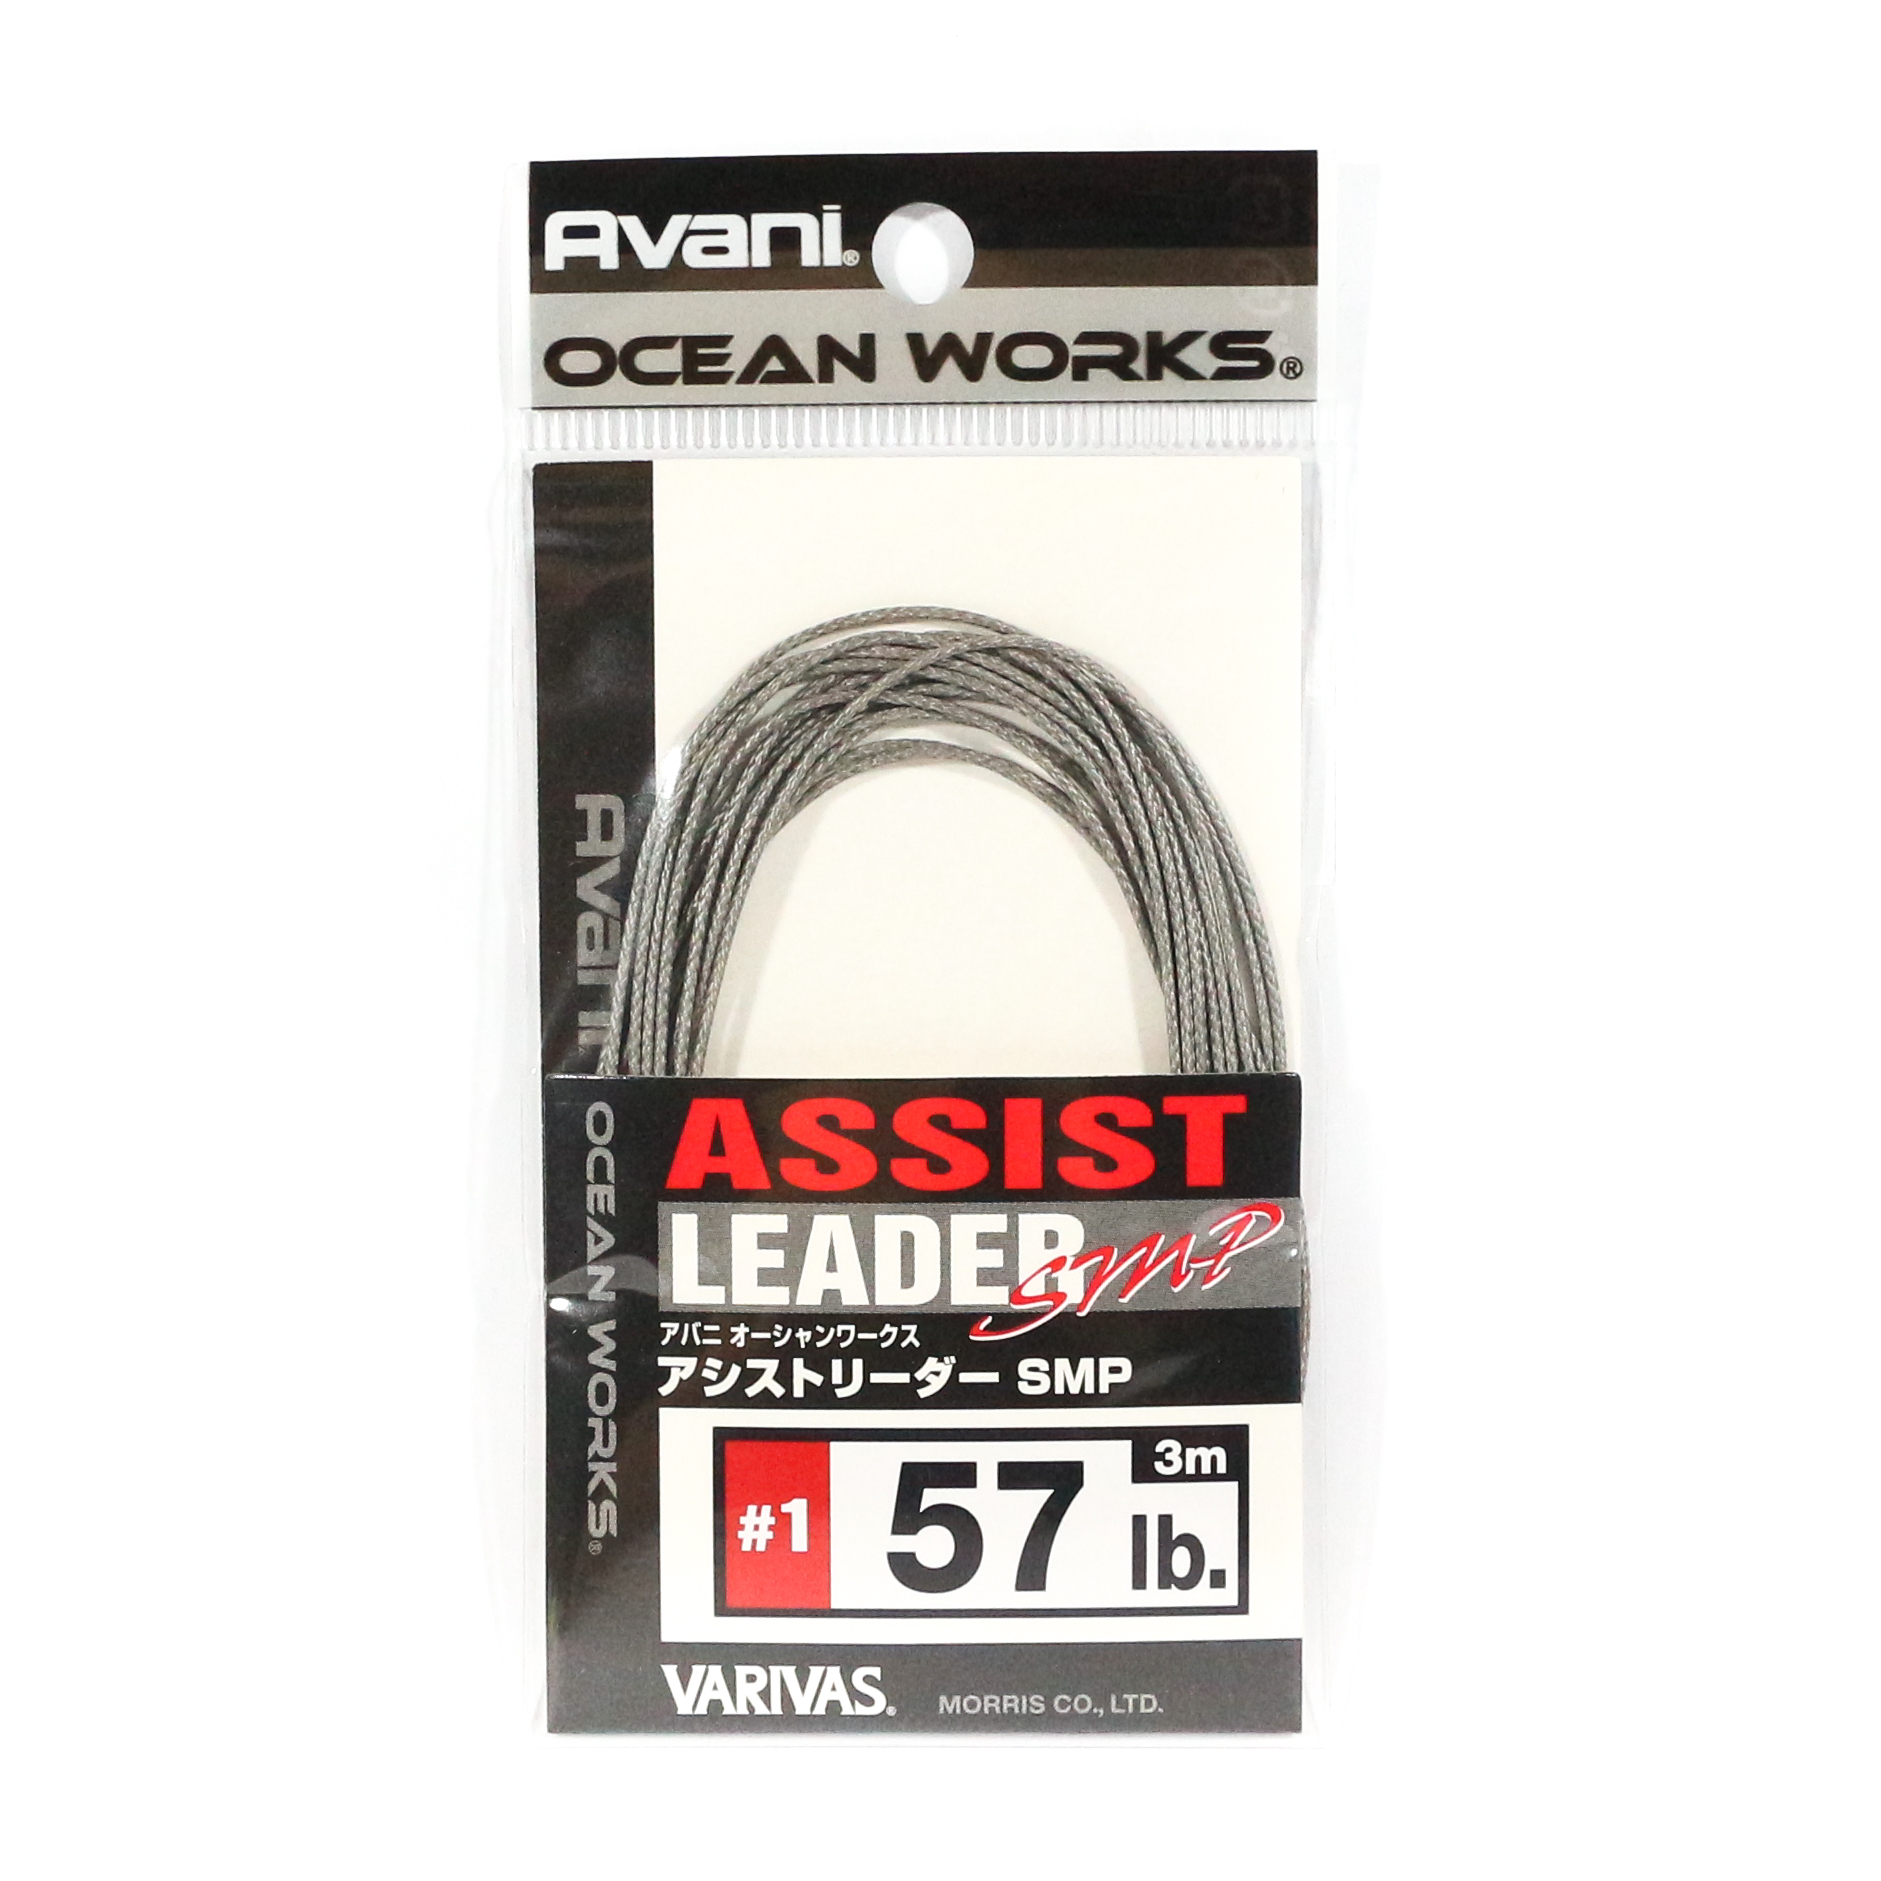 Varivas AH-1 Ocean Works Assist Leader SMP 3 meters #1 57lb (3943)